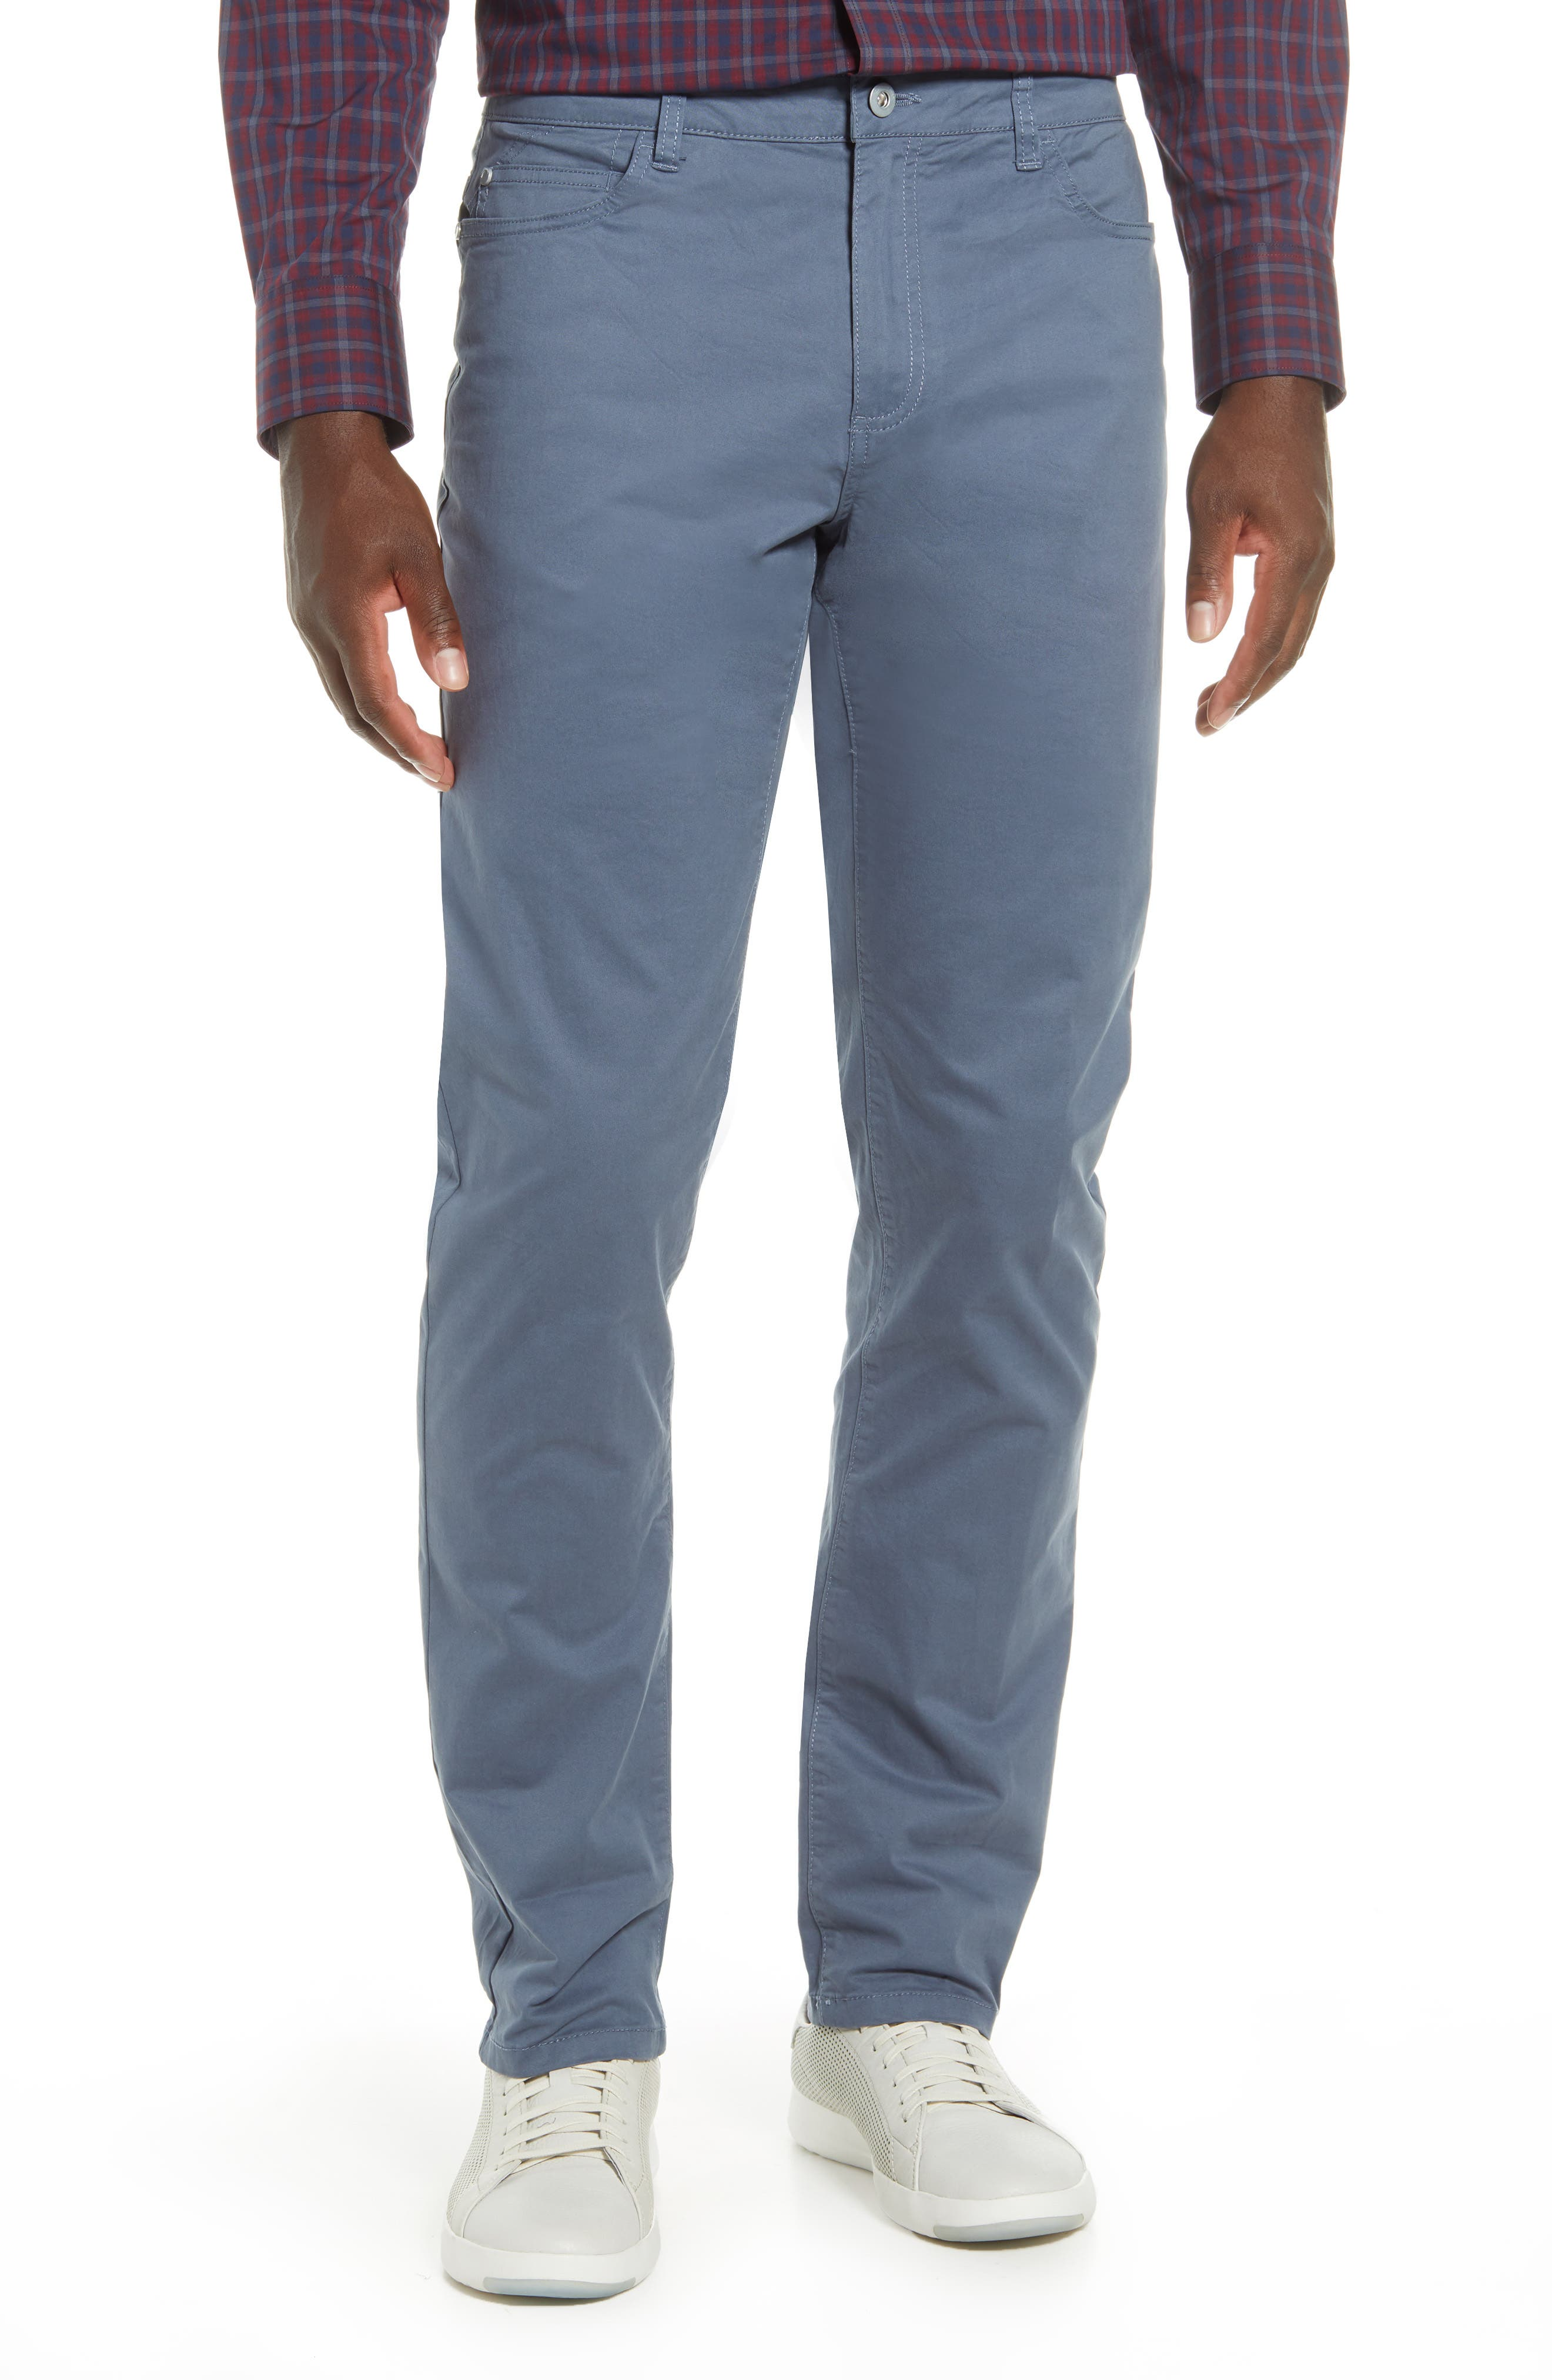 When you\\\'re ready to give your blue jeans a break, reach for these handsome flat-front pants tailored from stretch cotton twill for comfortable, all-day wear. Style Name: Cutter & Buck Voyager Straight Leg Pants. Style Number: 5919825 1. Available in stores.